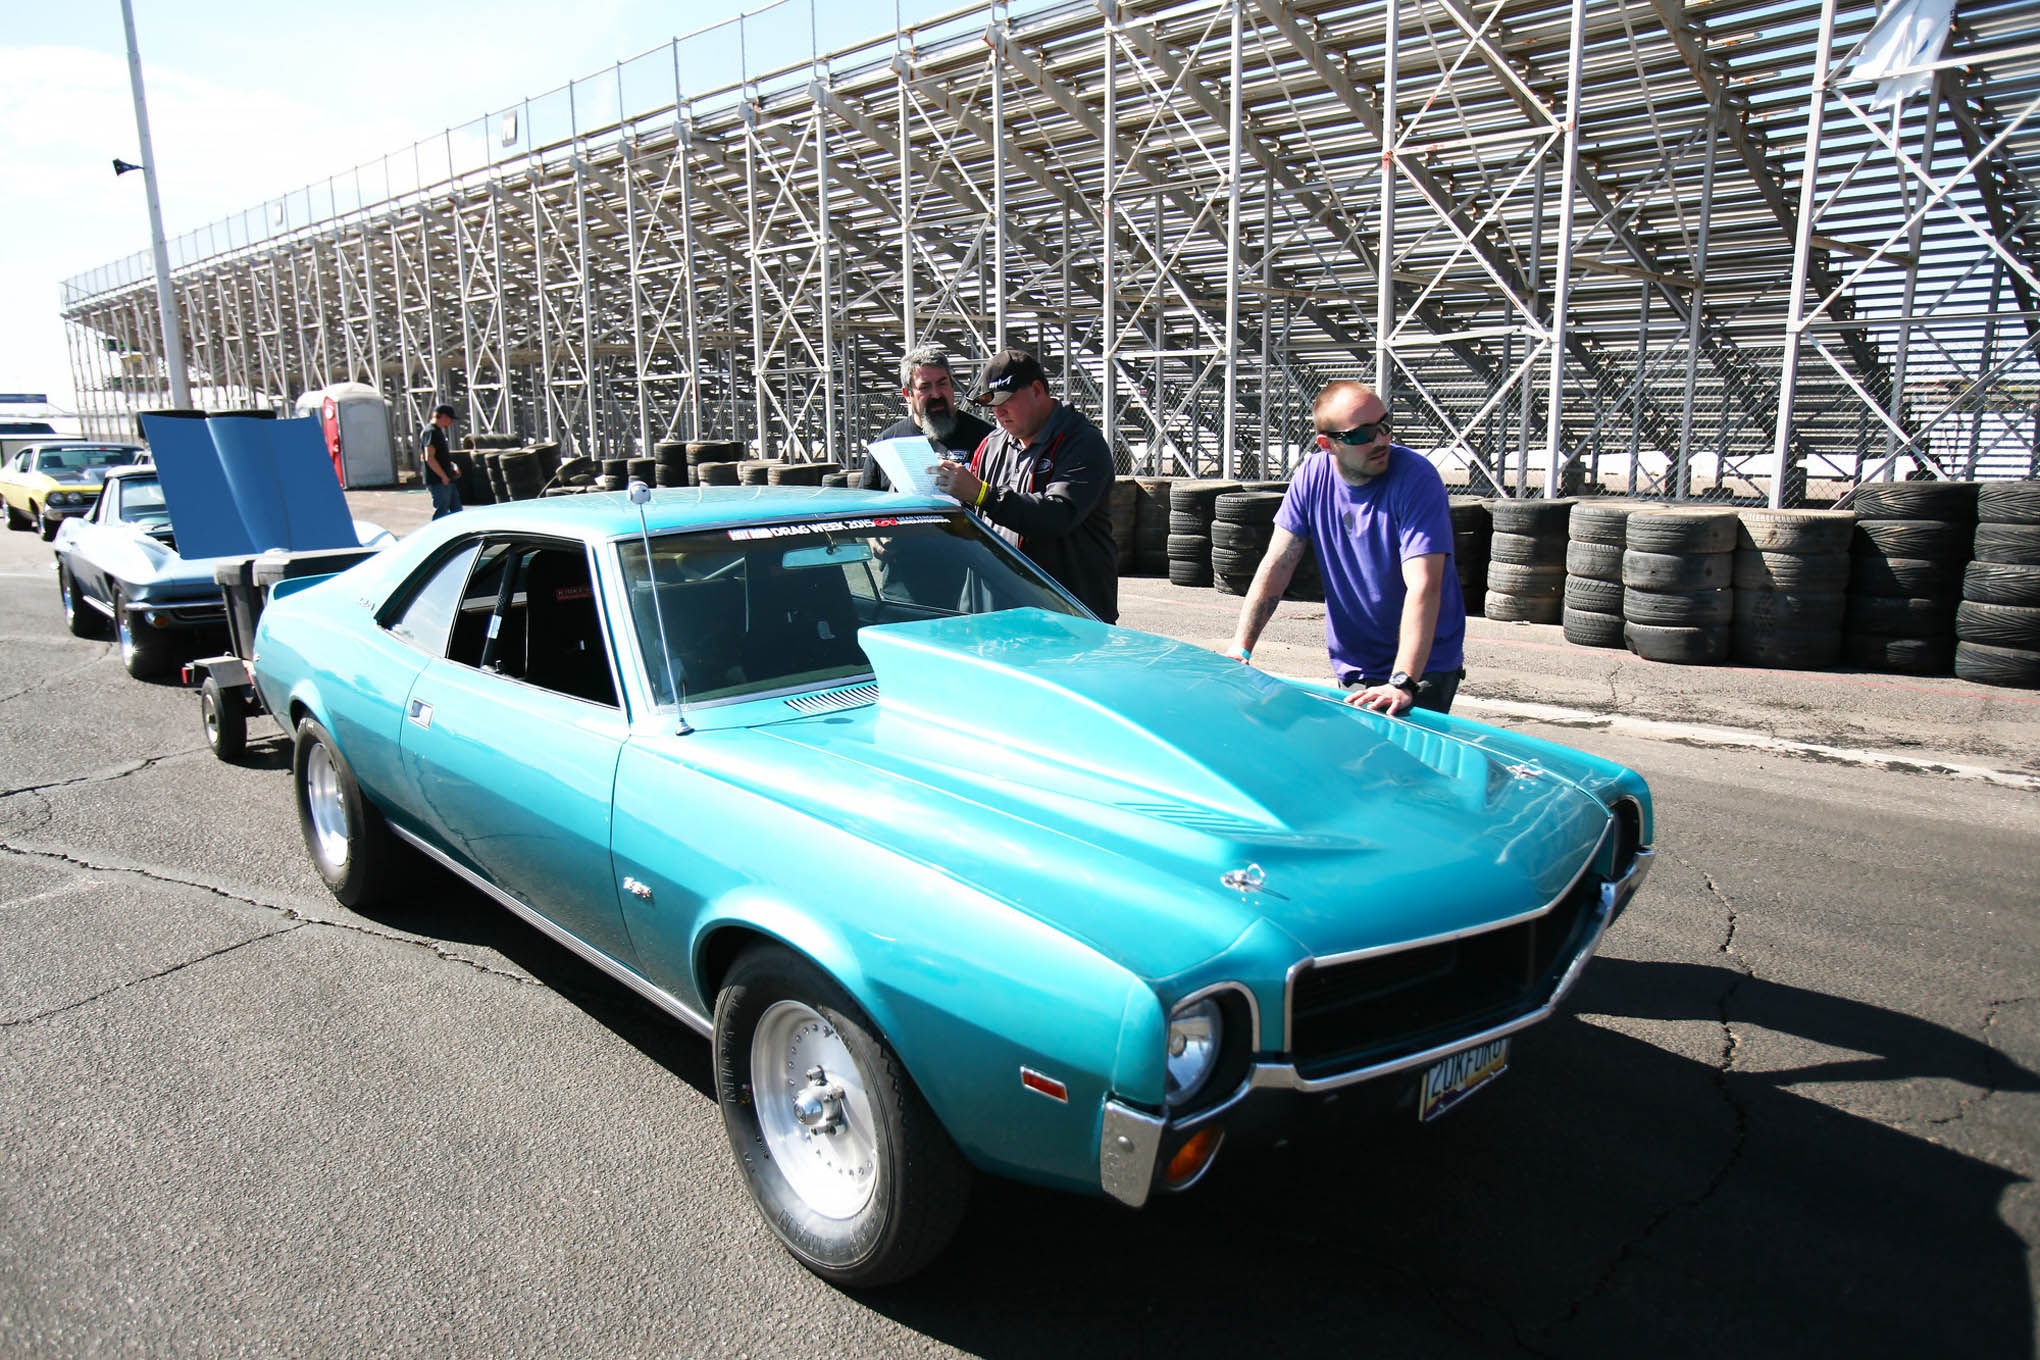 Tony Sanchez brought Drag Weekend West's only AMC. His 1969 Javelin is one of the loudest cars on track and consistently ran mid-10s on Drag Week 2015.